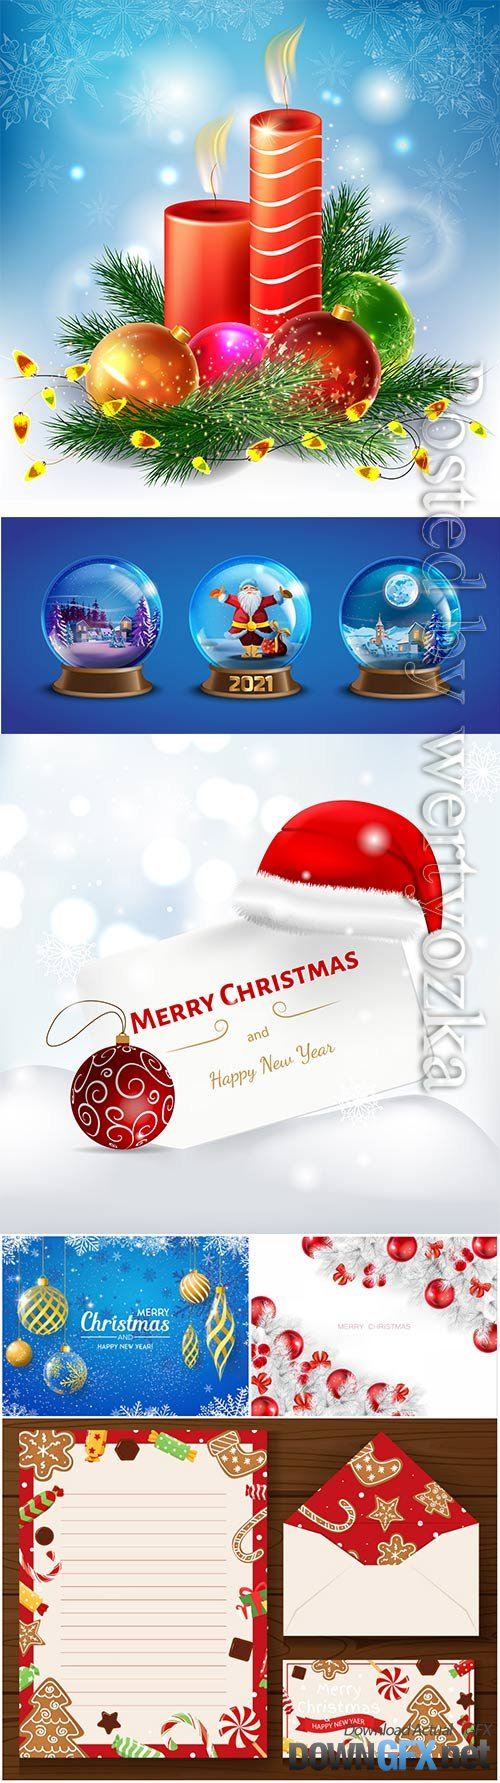 2021 Merry christmas vector illustration